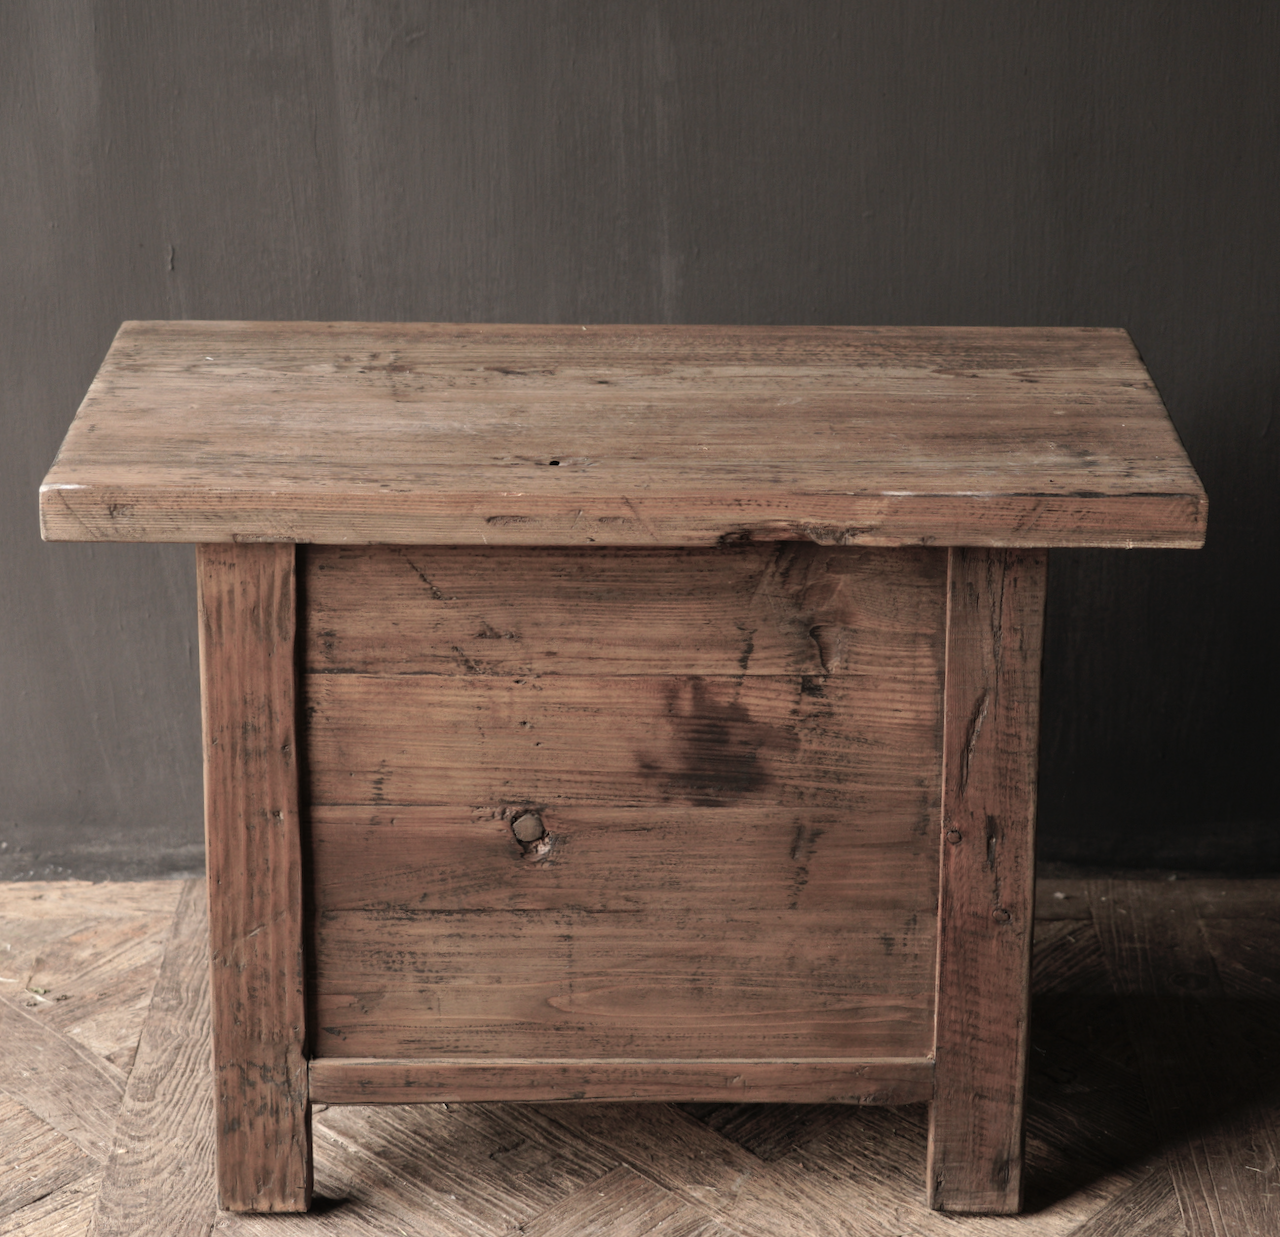 Old driftwood wooden cabinet or bedside table with drawer-5